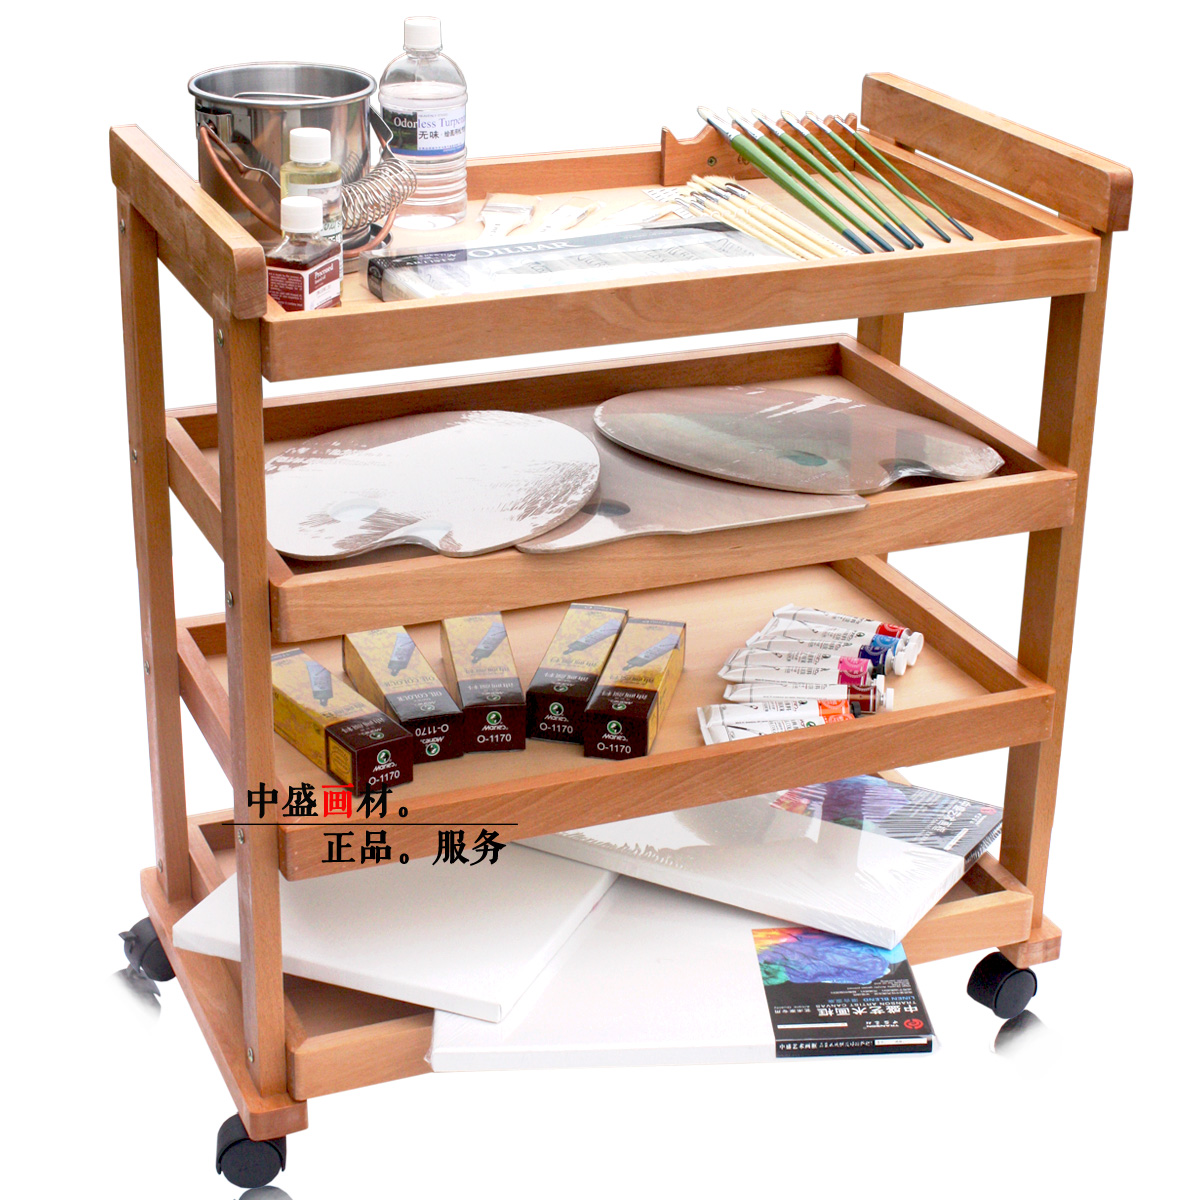 Sheng painted wood painting car painting red beech caster four layers desk cabinets painted oil painting frame art supplies